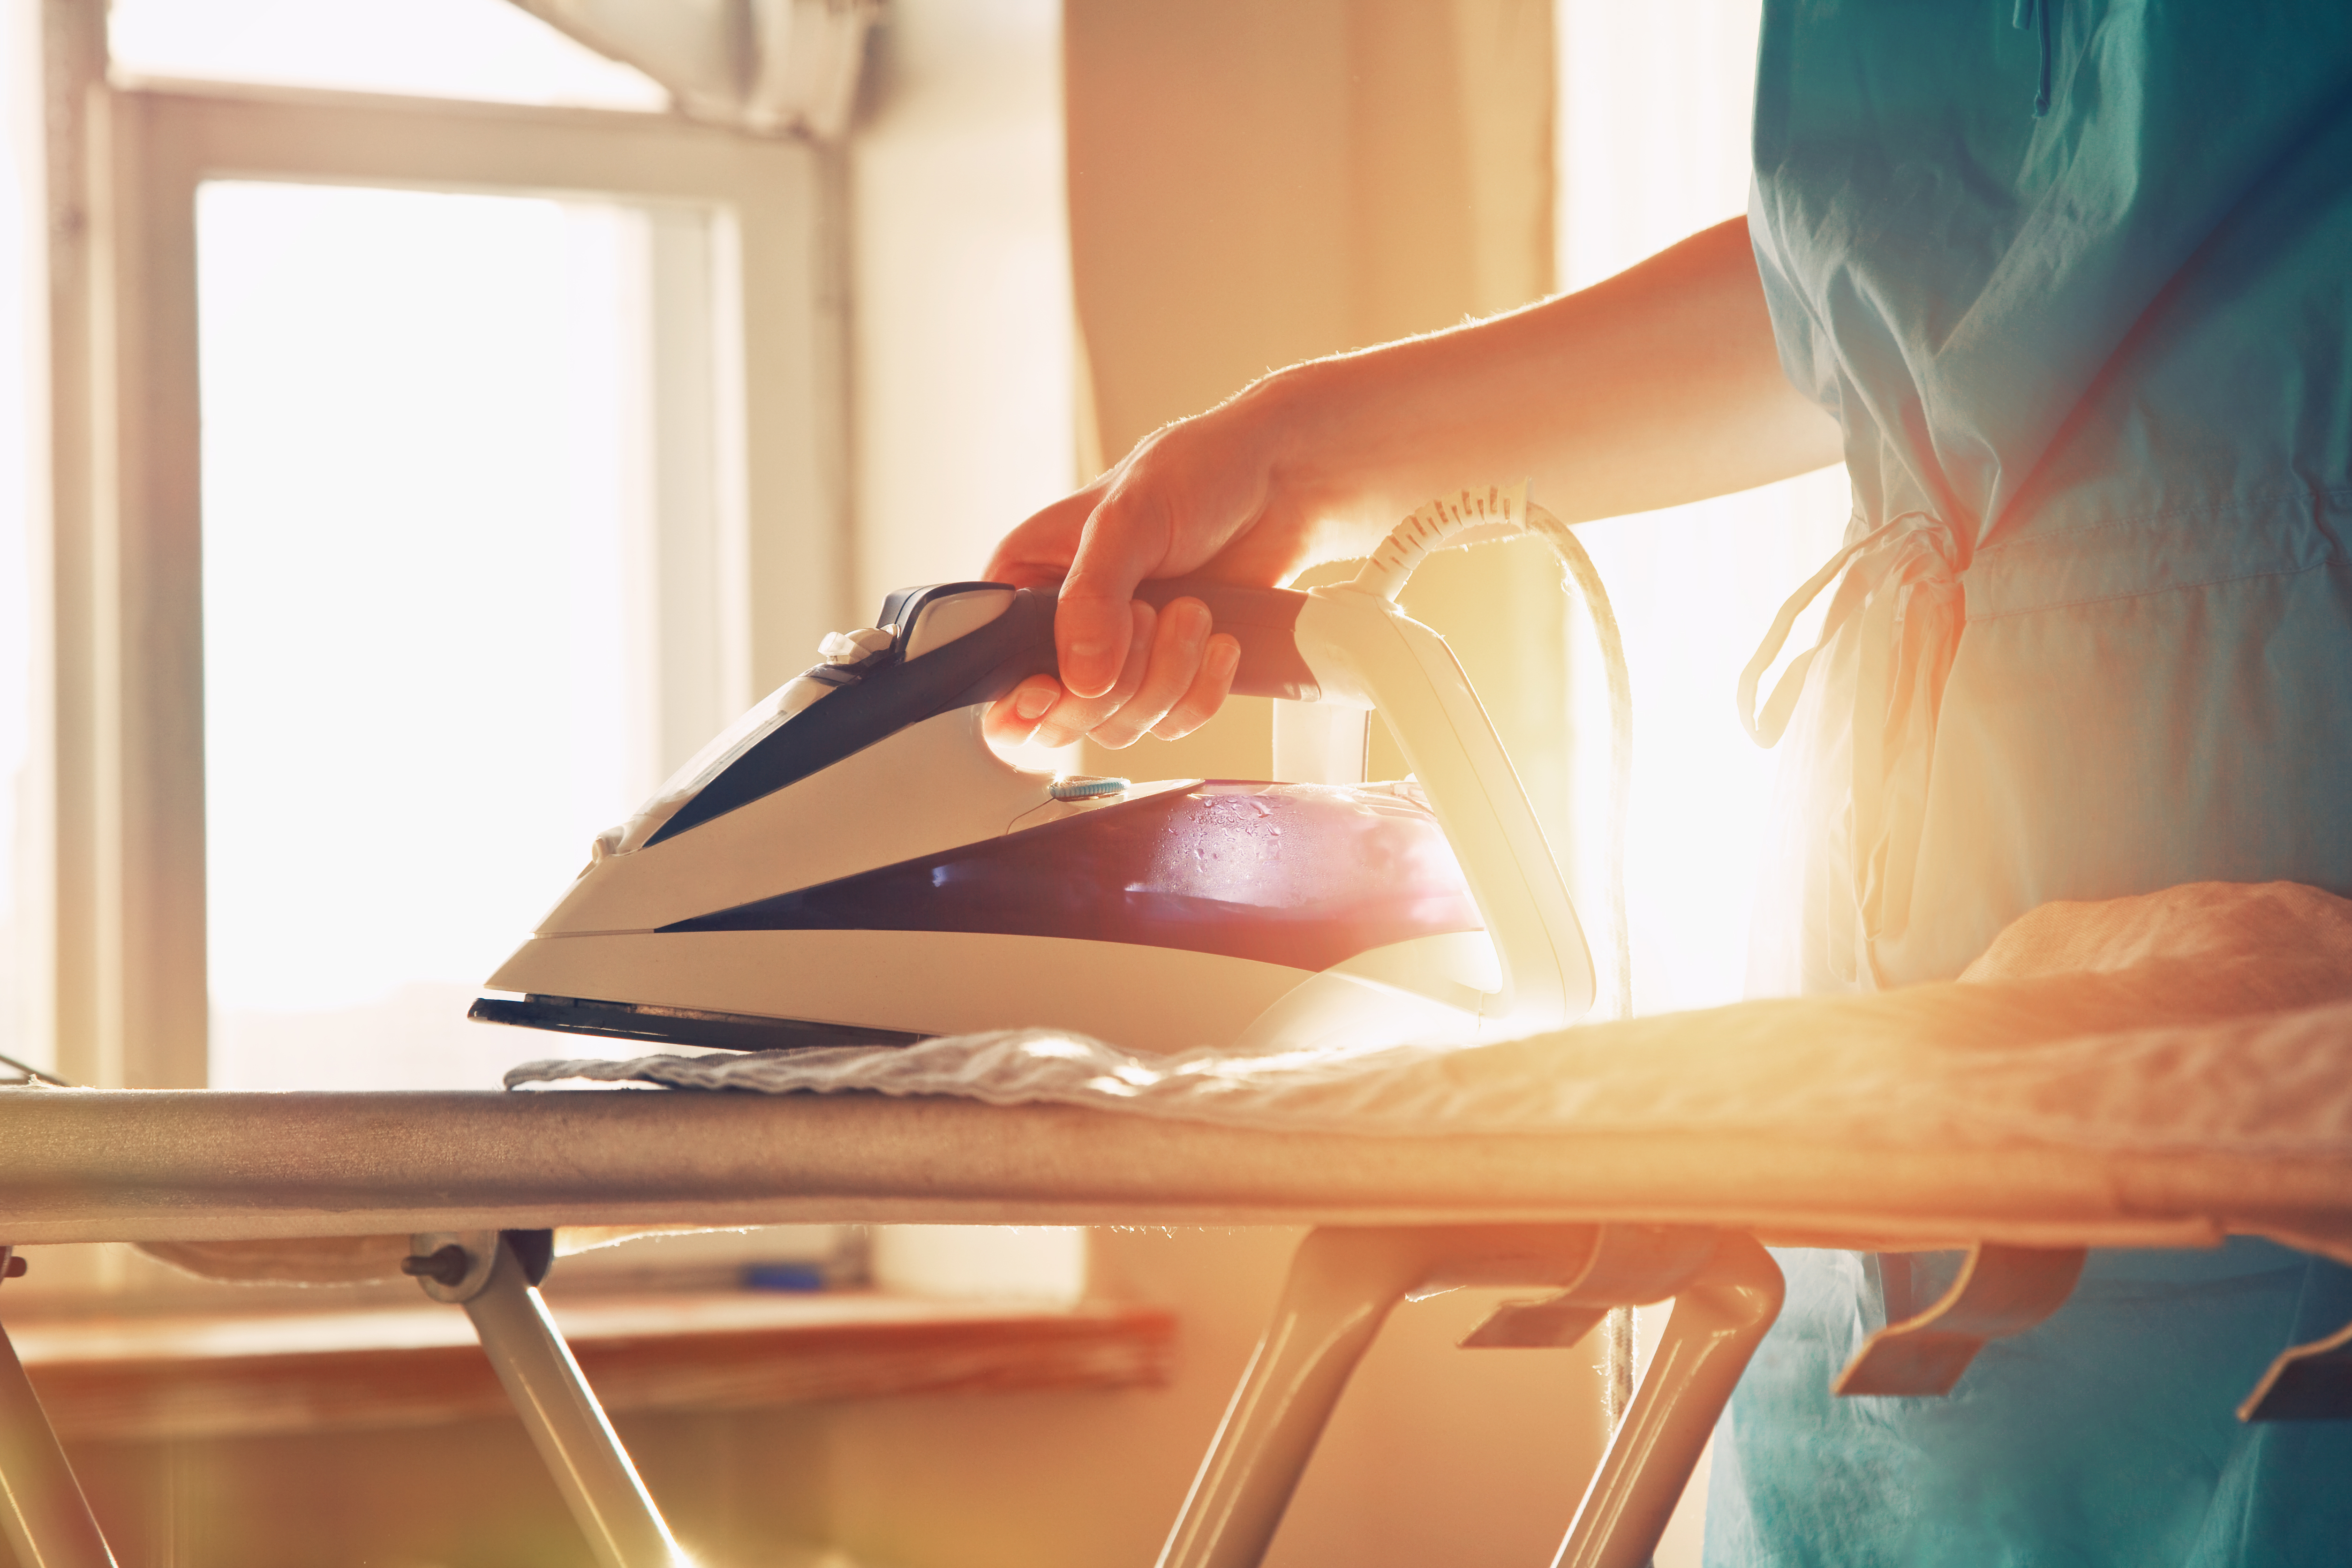 A person ironing clothes on a board